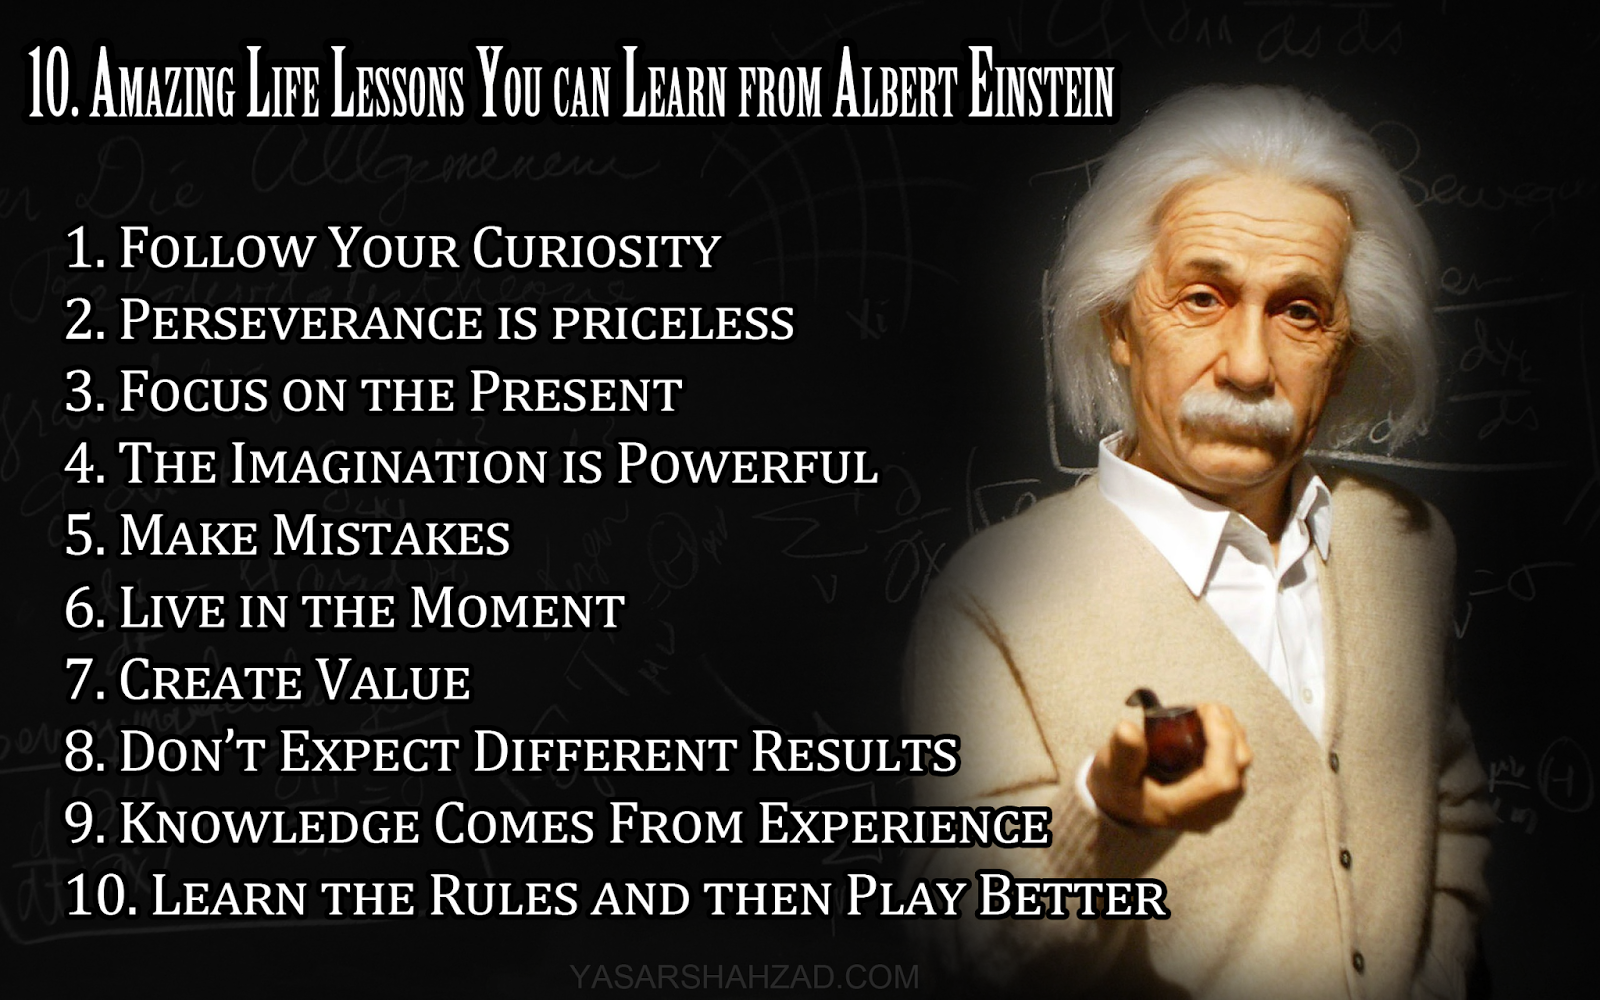 albert einstein is one of the most celebrated scientists